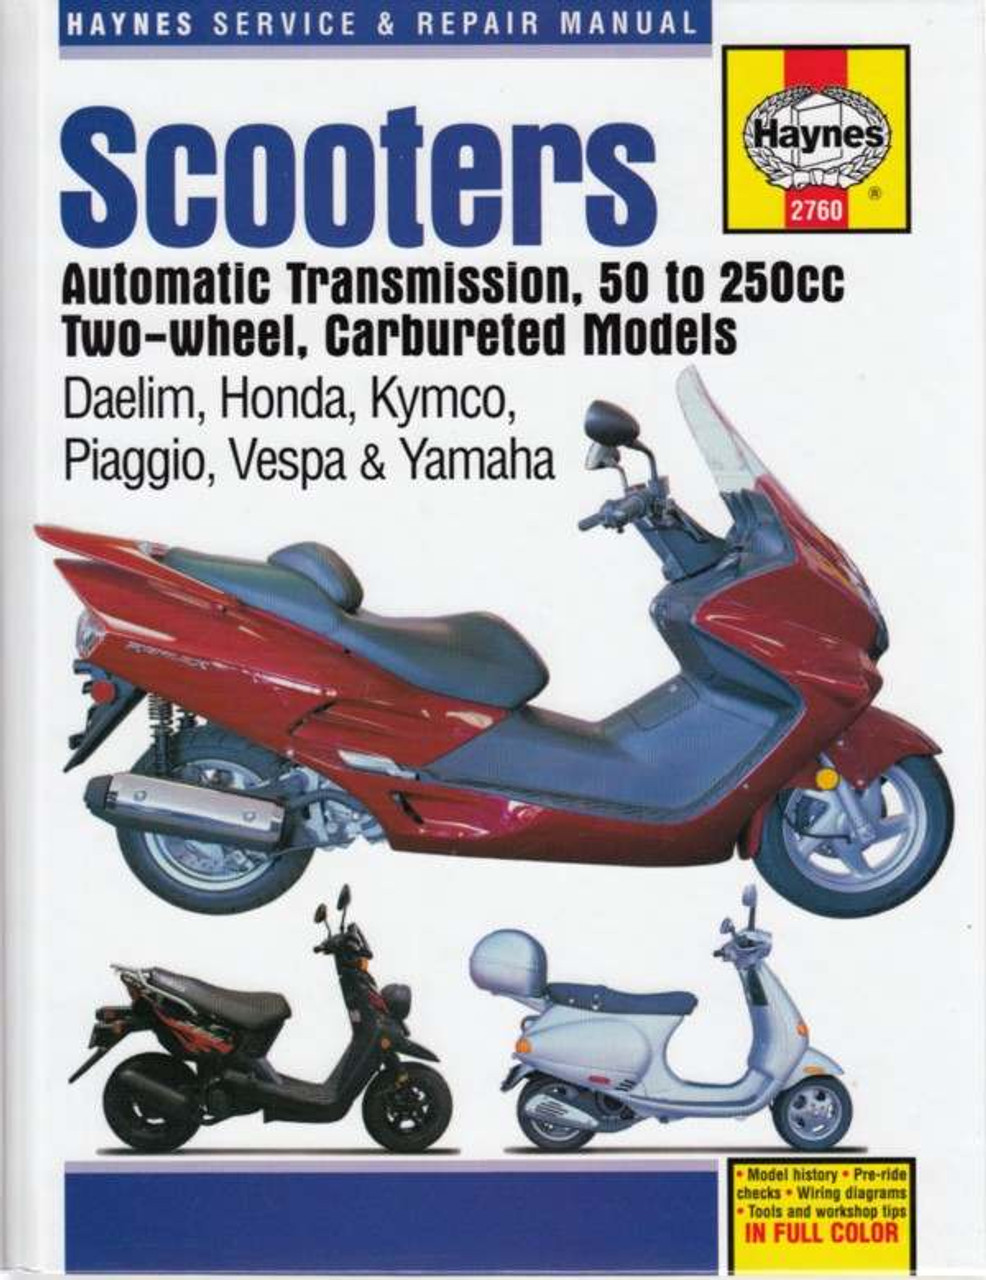 Scooters Automatic Transmission 50 To 250cc Two Wheel Carbureted Models Workshop Manual